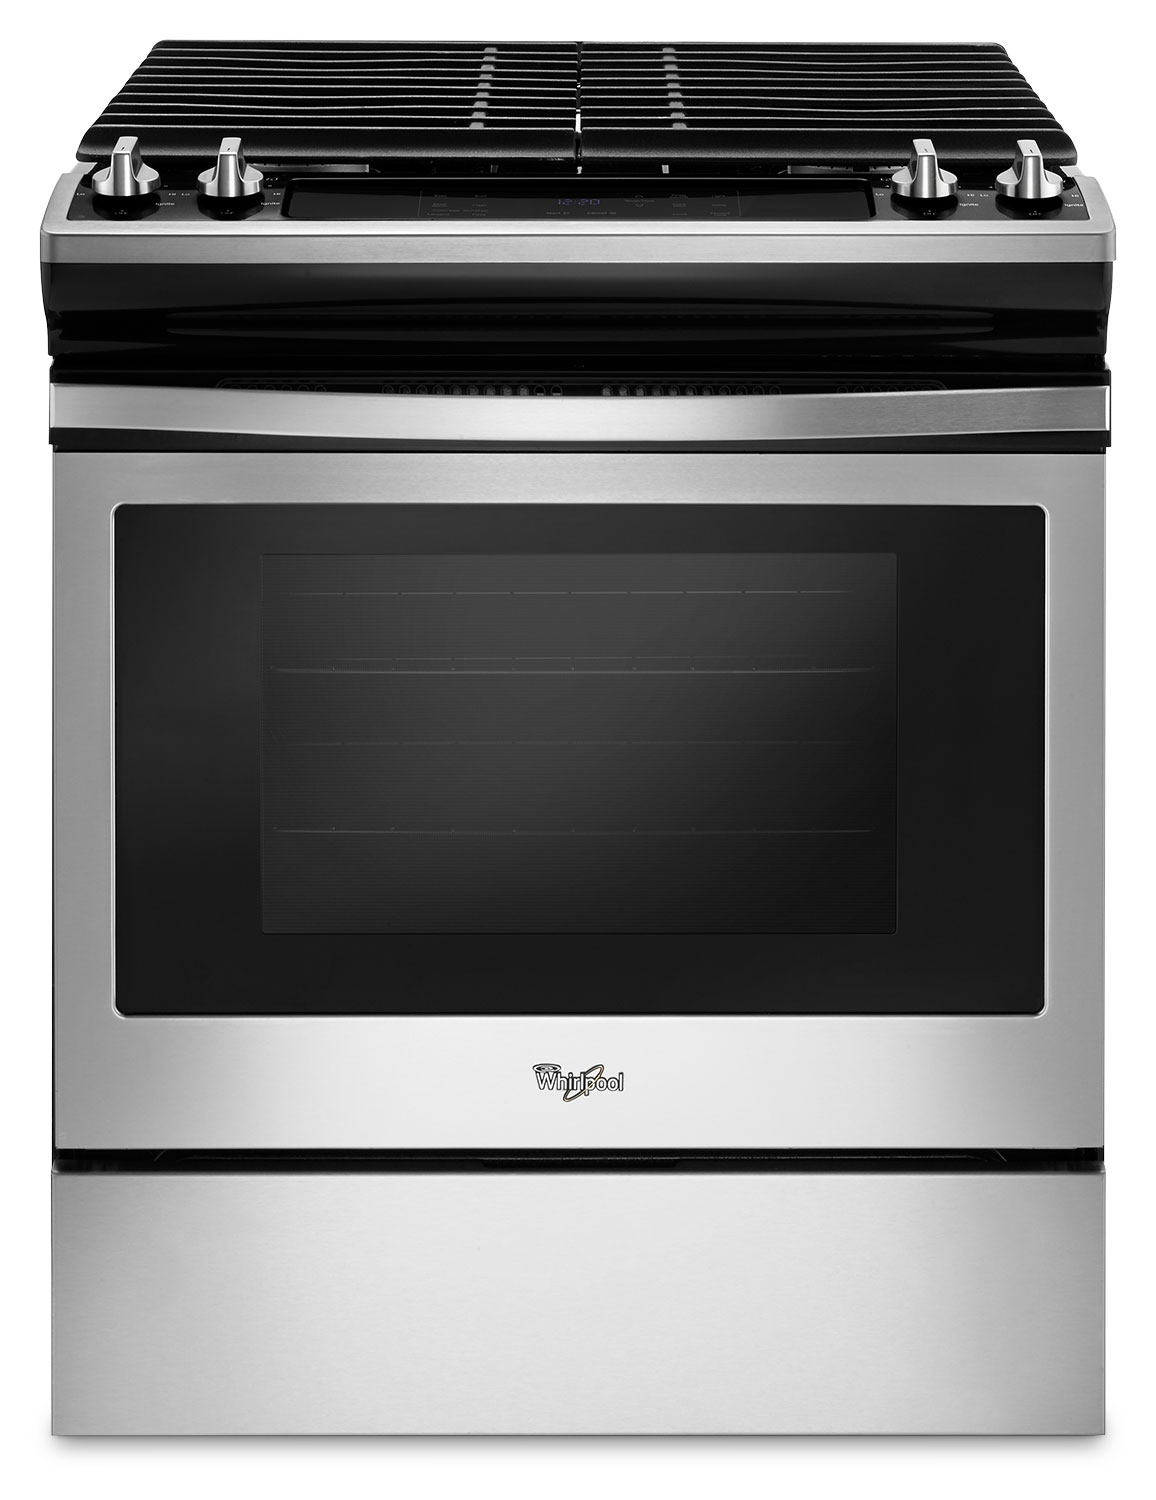 Cooking Products - Whirlpool Stainless Steel Slide-In Gas Range (4.8 Cu. Ft.) - WEG515S0FS